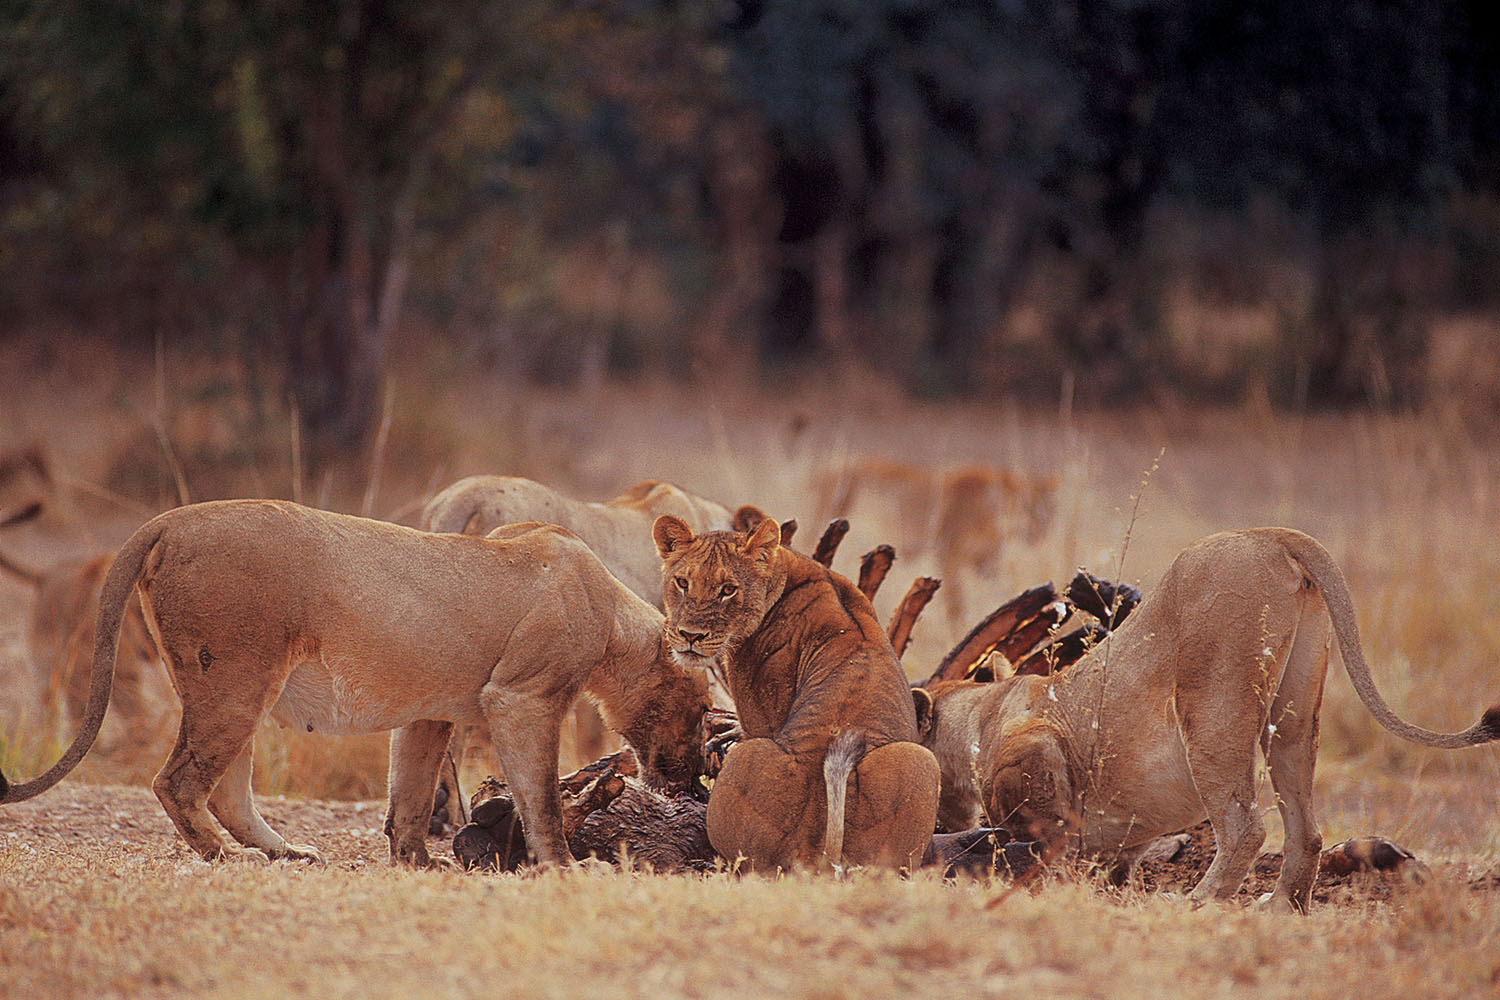 luangwa safari house lodge-zambia-in-style-tours-safari-packages-lodges-south-luangwa-national-park-lions-wildlife-game-drives simple bush ceremony